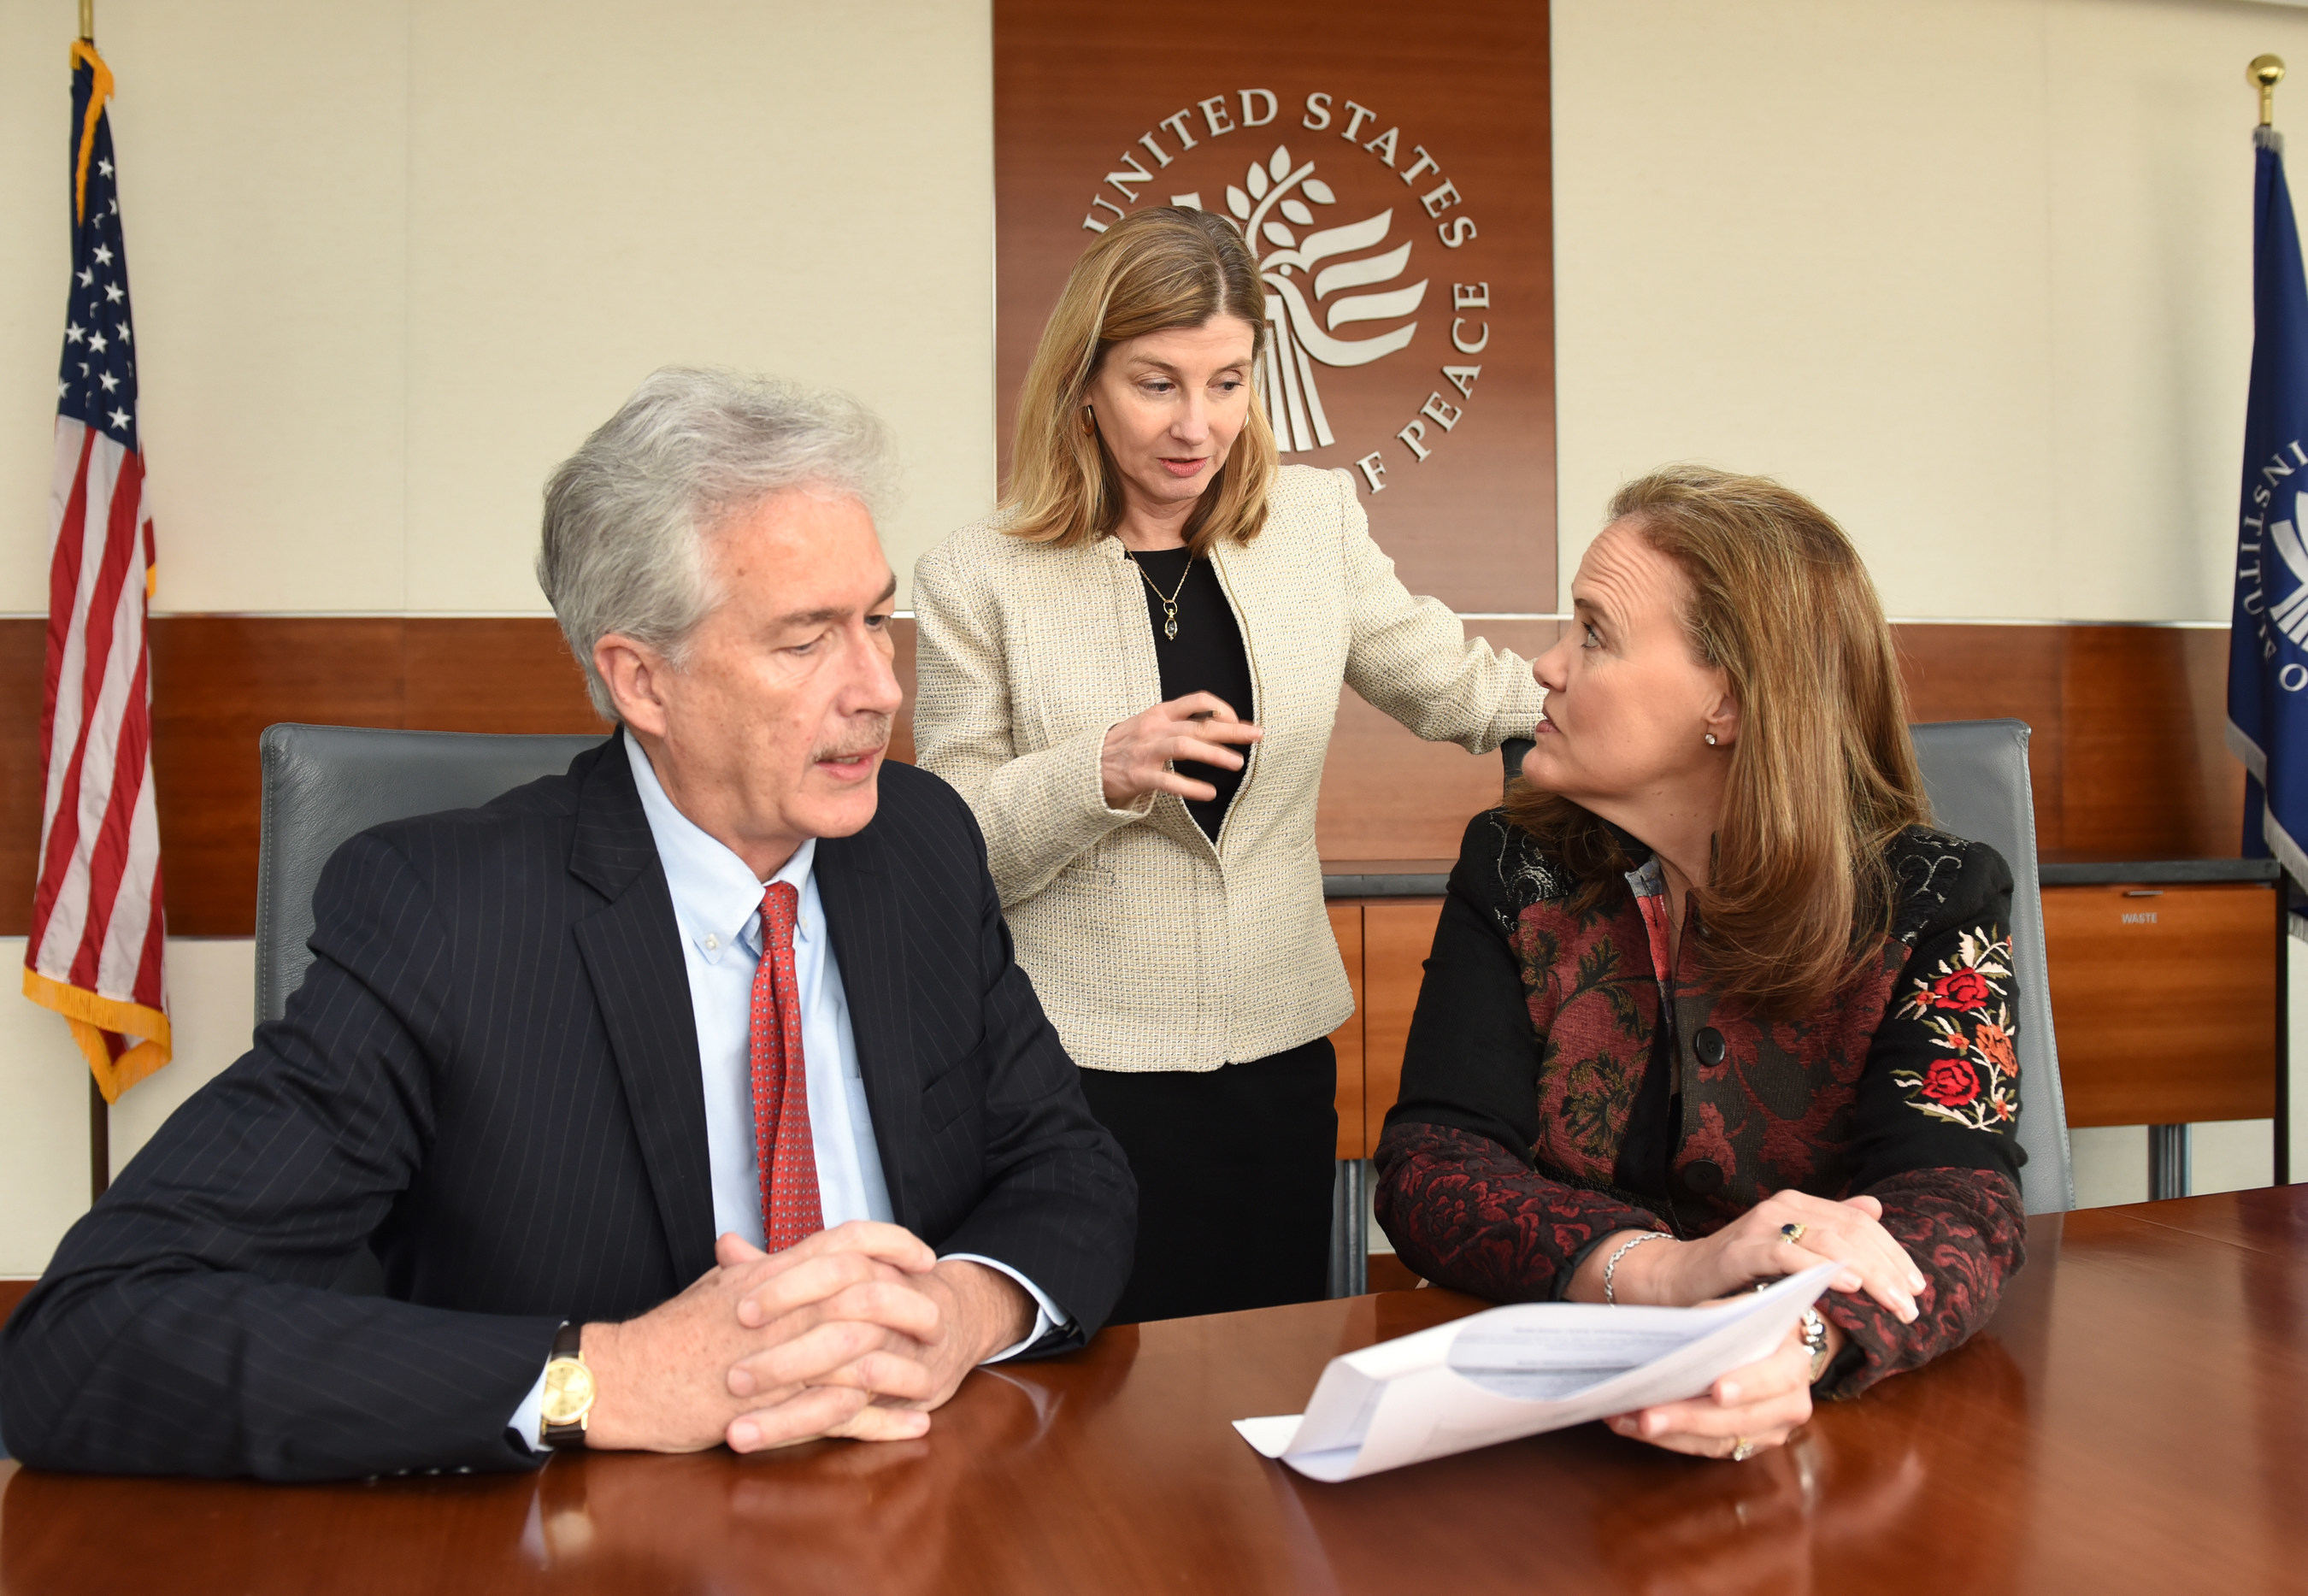 From L to R: Carnegie Endowment for International Peace President William J. Burns (former deputy secretary of state); U.S. Institute of Peace President Nancy Lindborg (former assistant administrator for the Bureau for Democracy, Conflict and Humanitarian Assistance at the U.S. Agency for International Development); and Center for a New American Security CEO Michele Flournoy (former undersecretary of defense for policy) launched the Study Group on Fragility today.